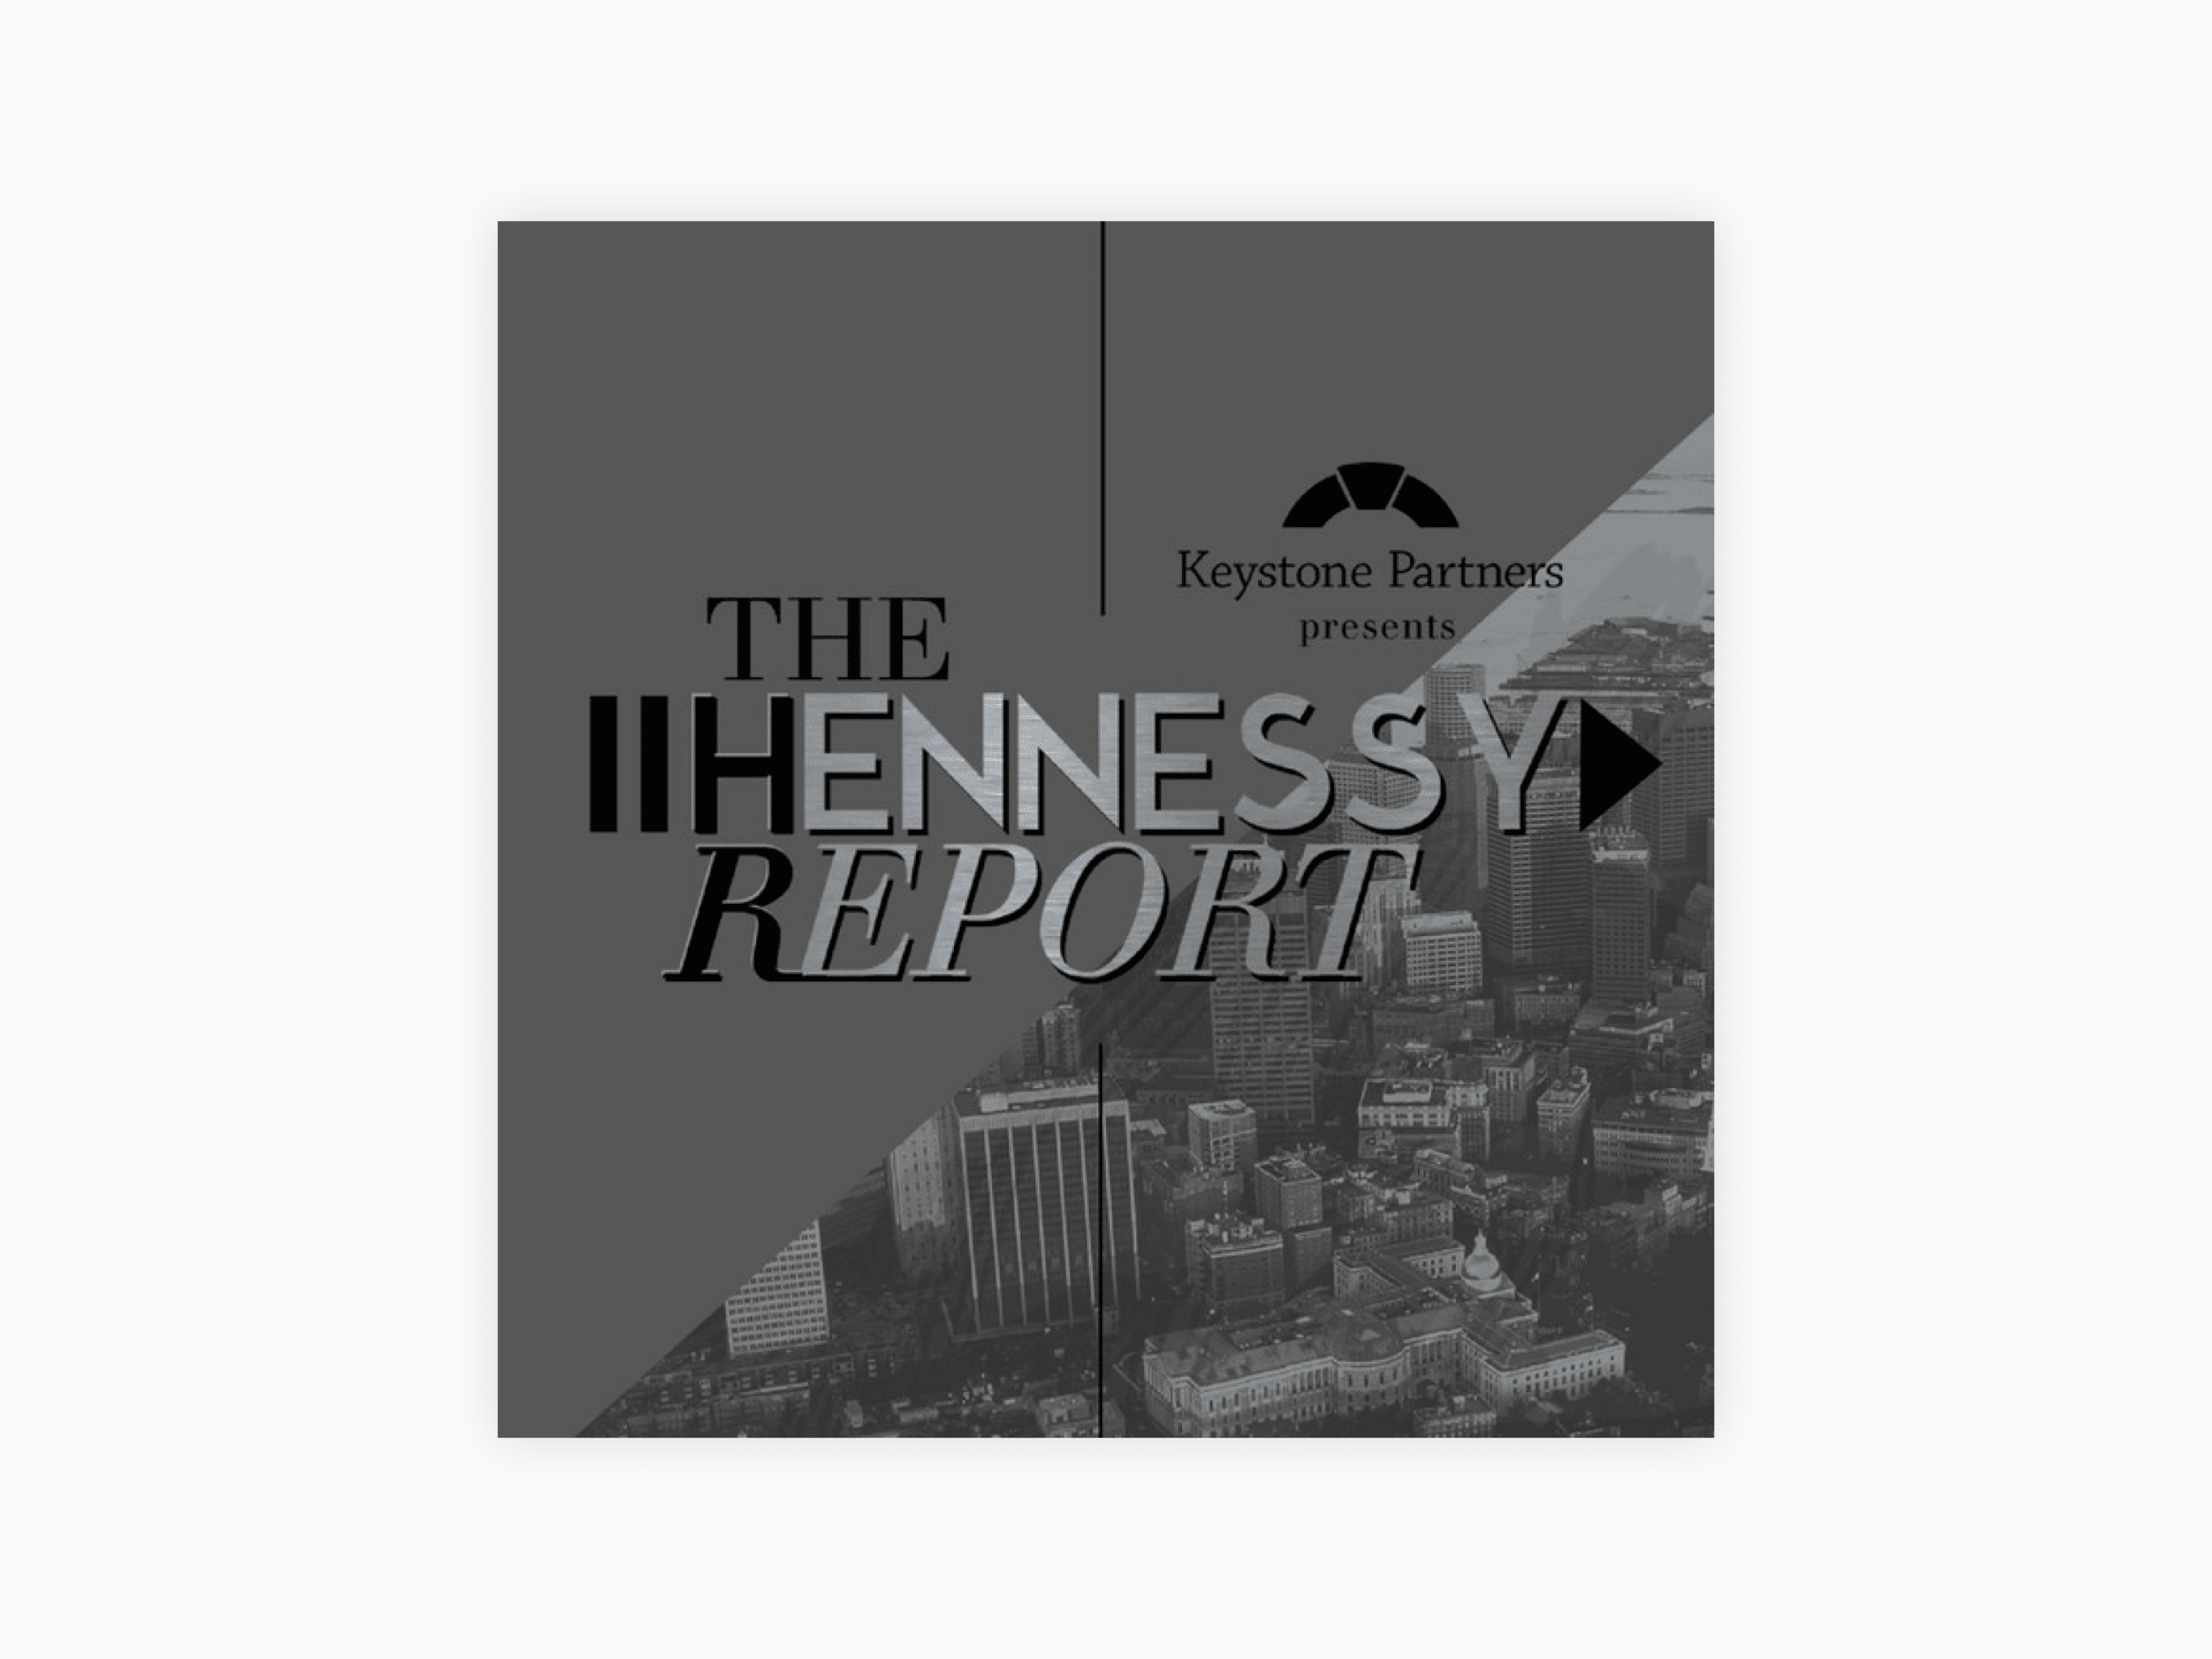 Cover art for the hennessy report